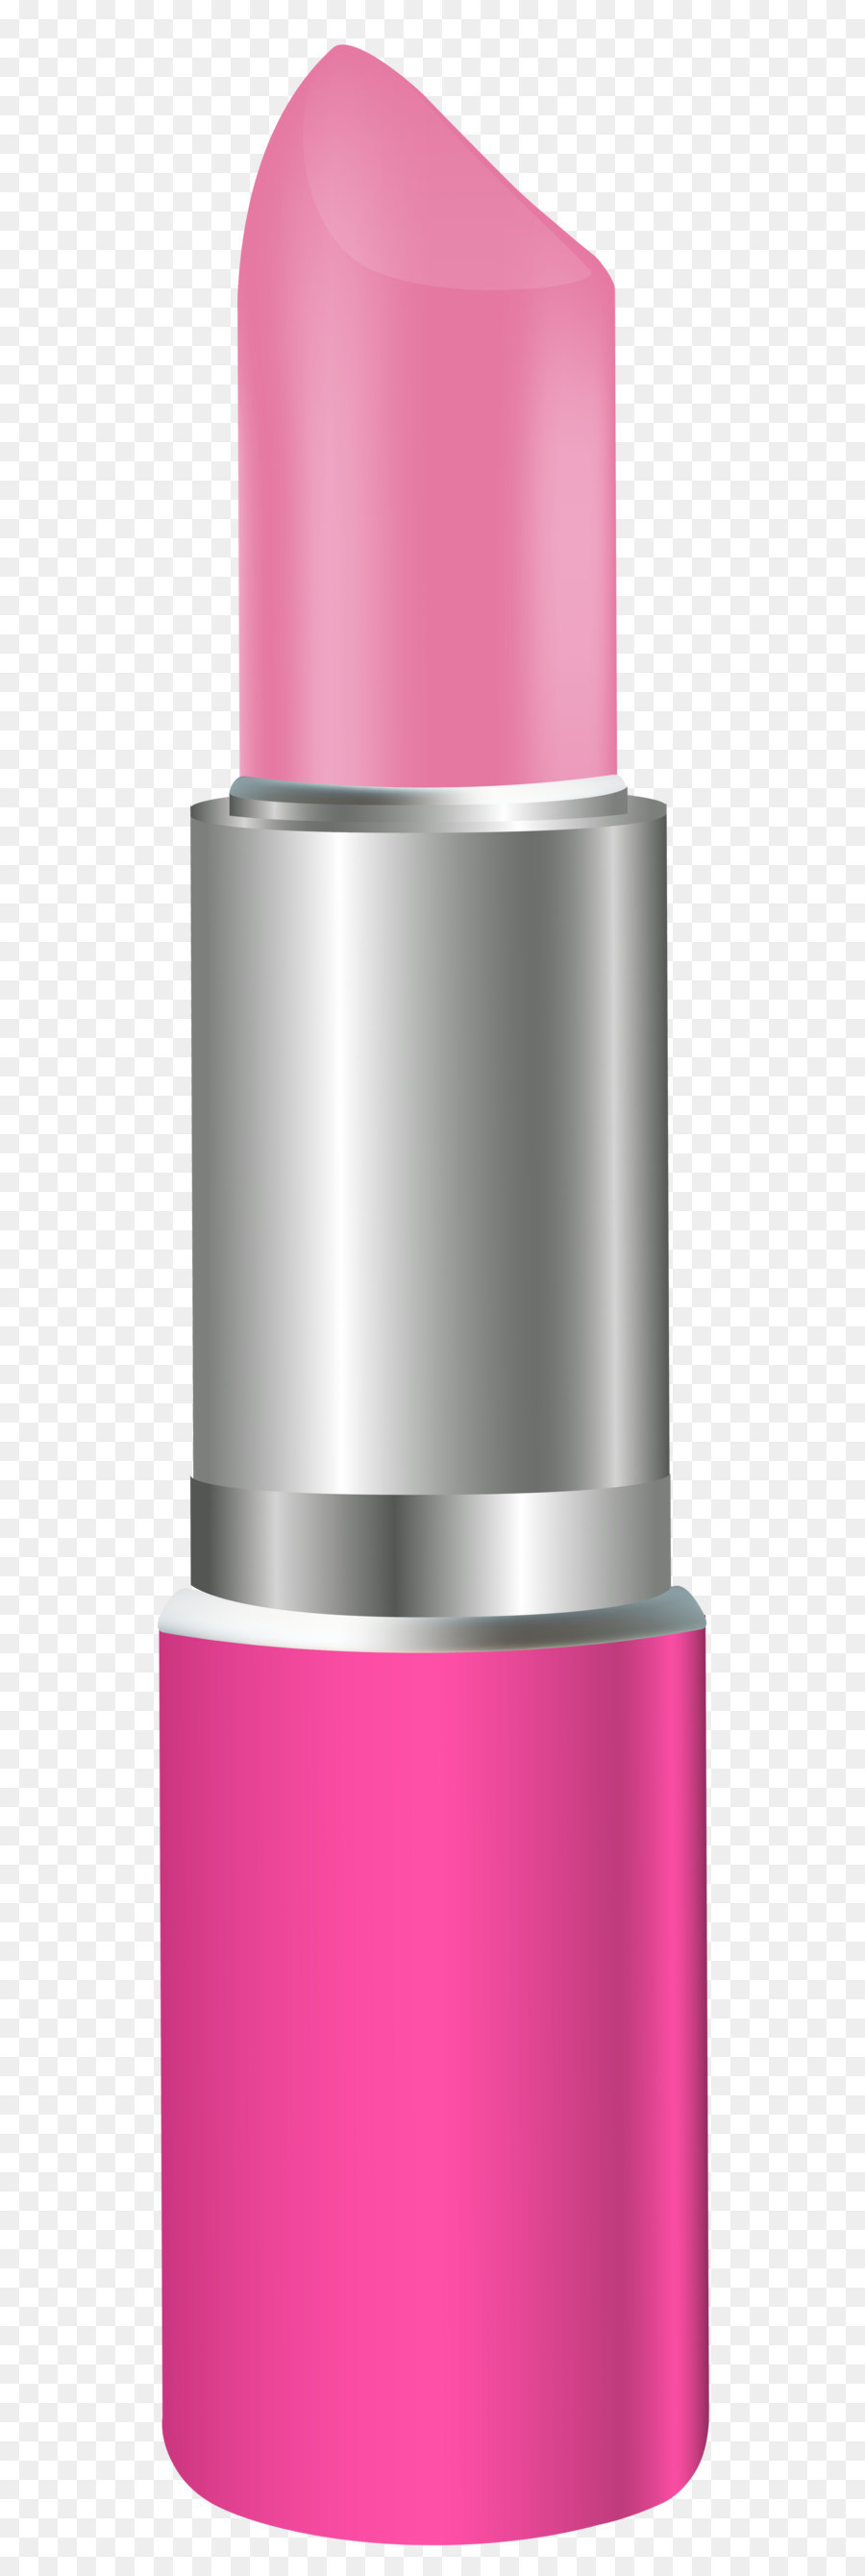 Free Lipstick Clipart Transparent, Download Free Clip Art.